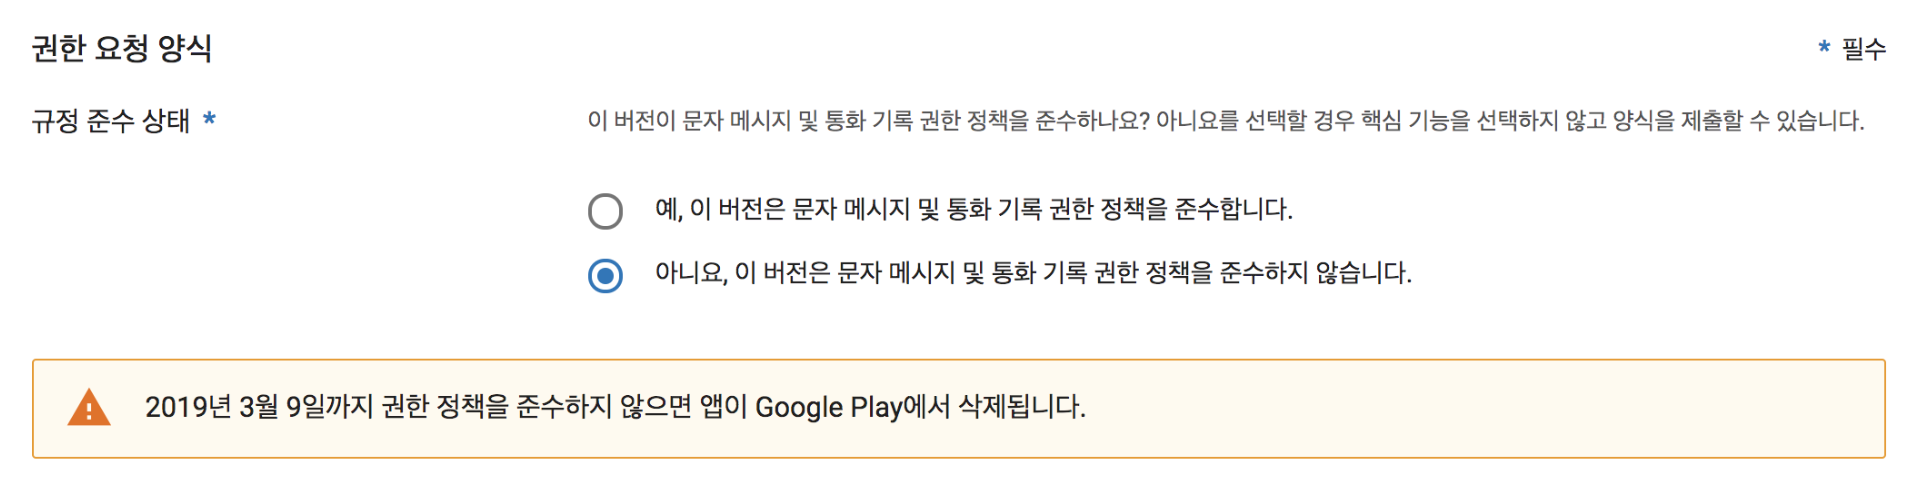 googleplay-permission-warning-form